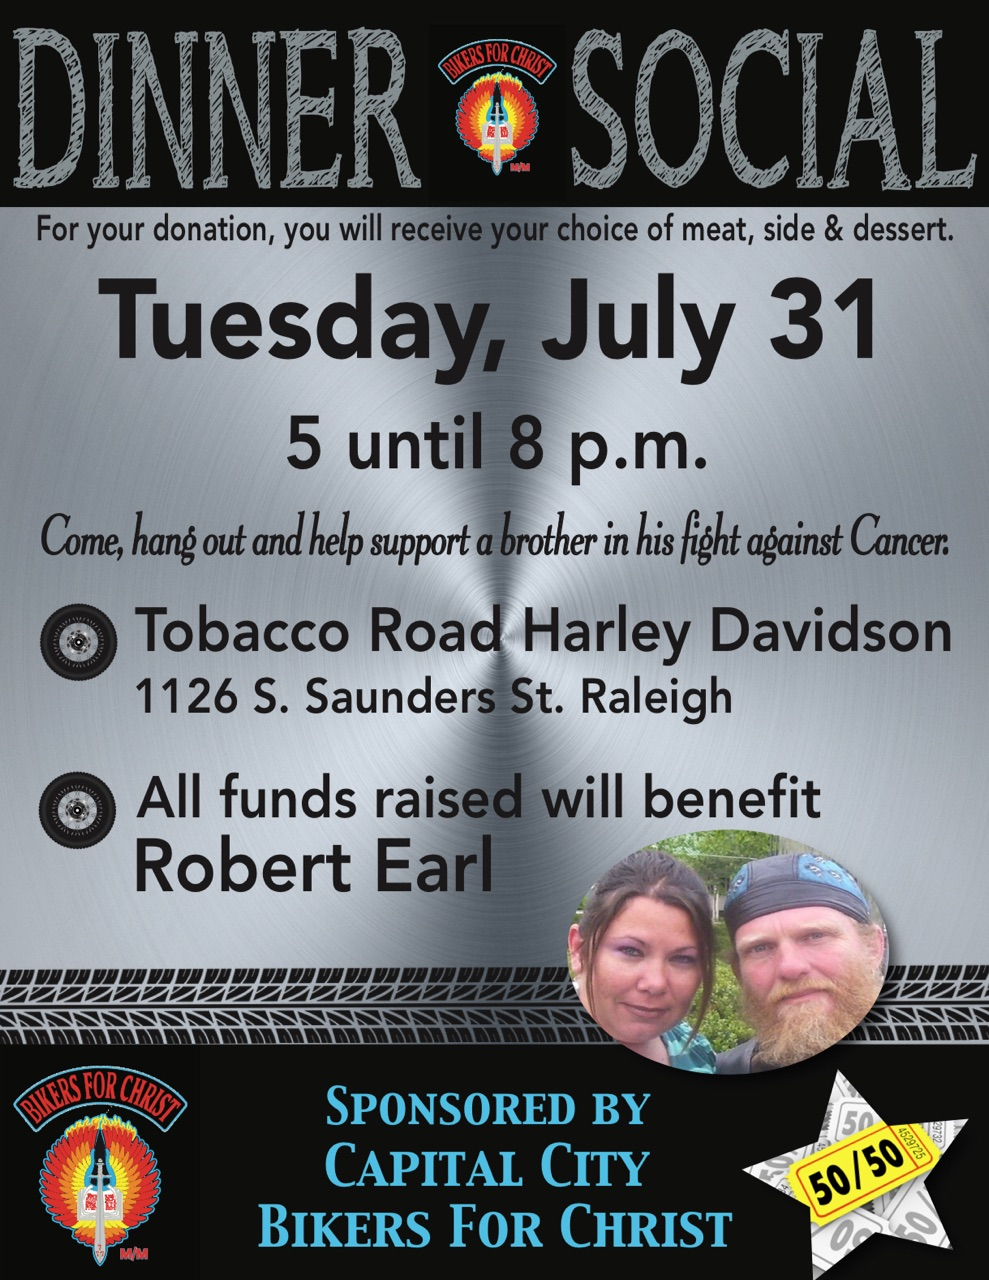 Capital City Bikers for Christ Dinner Social | Tobacco Road